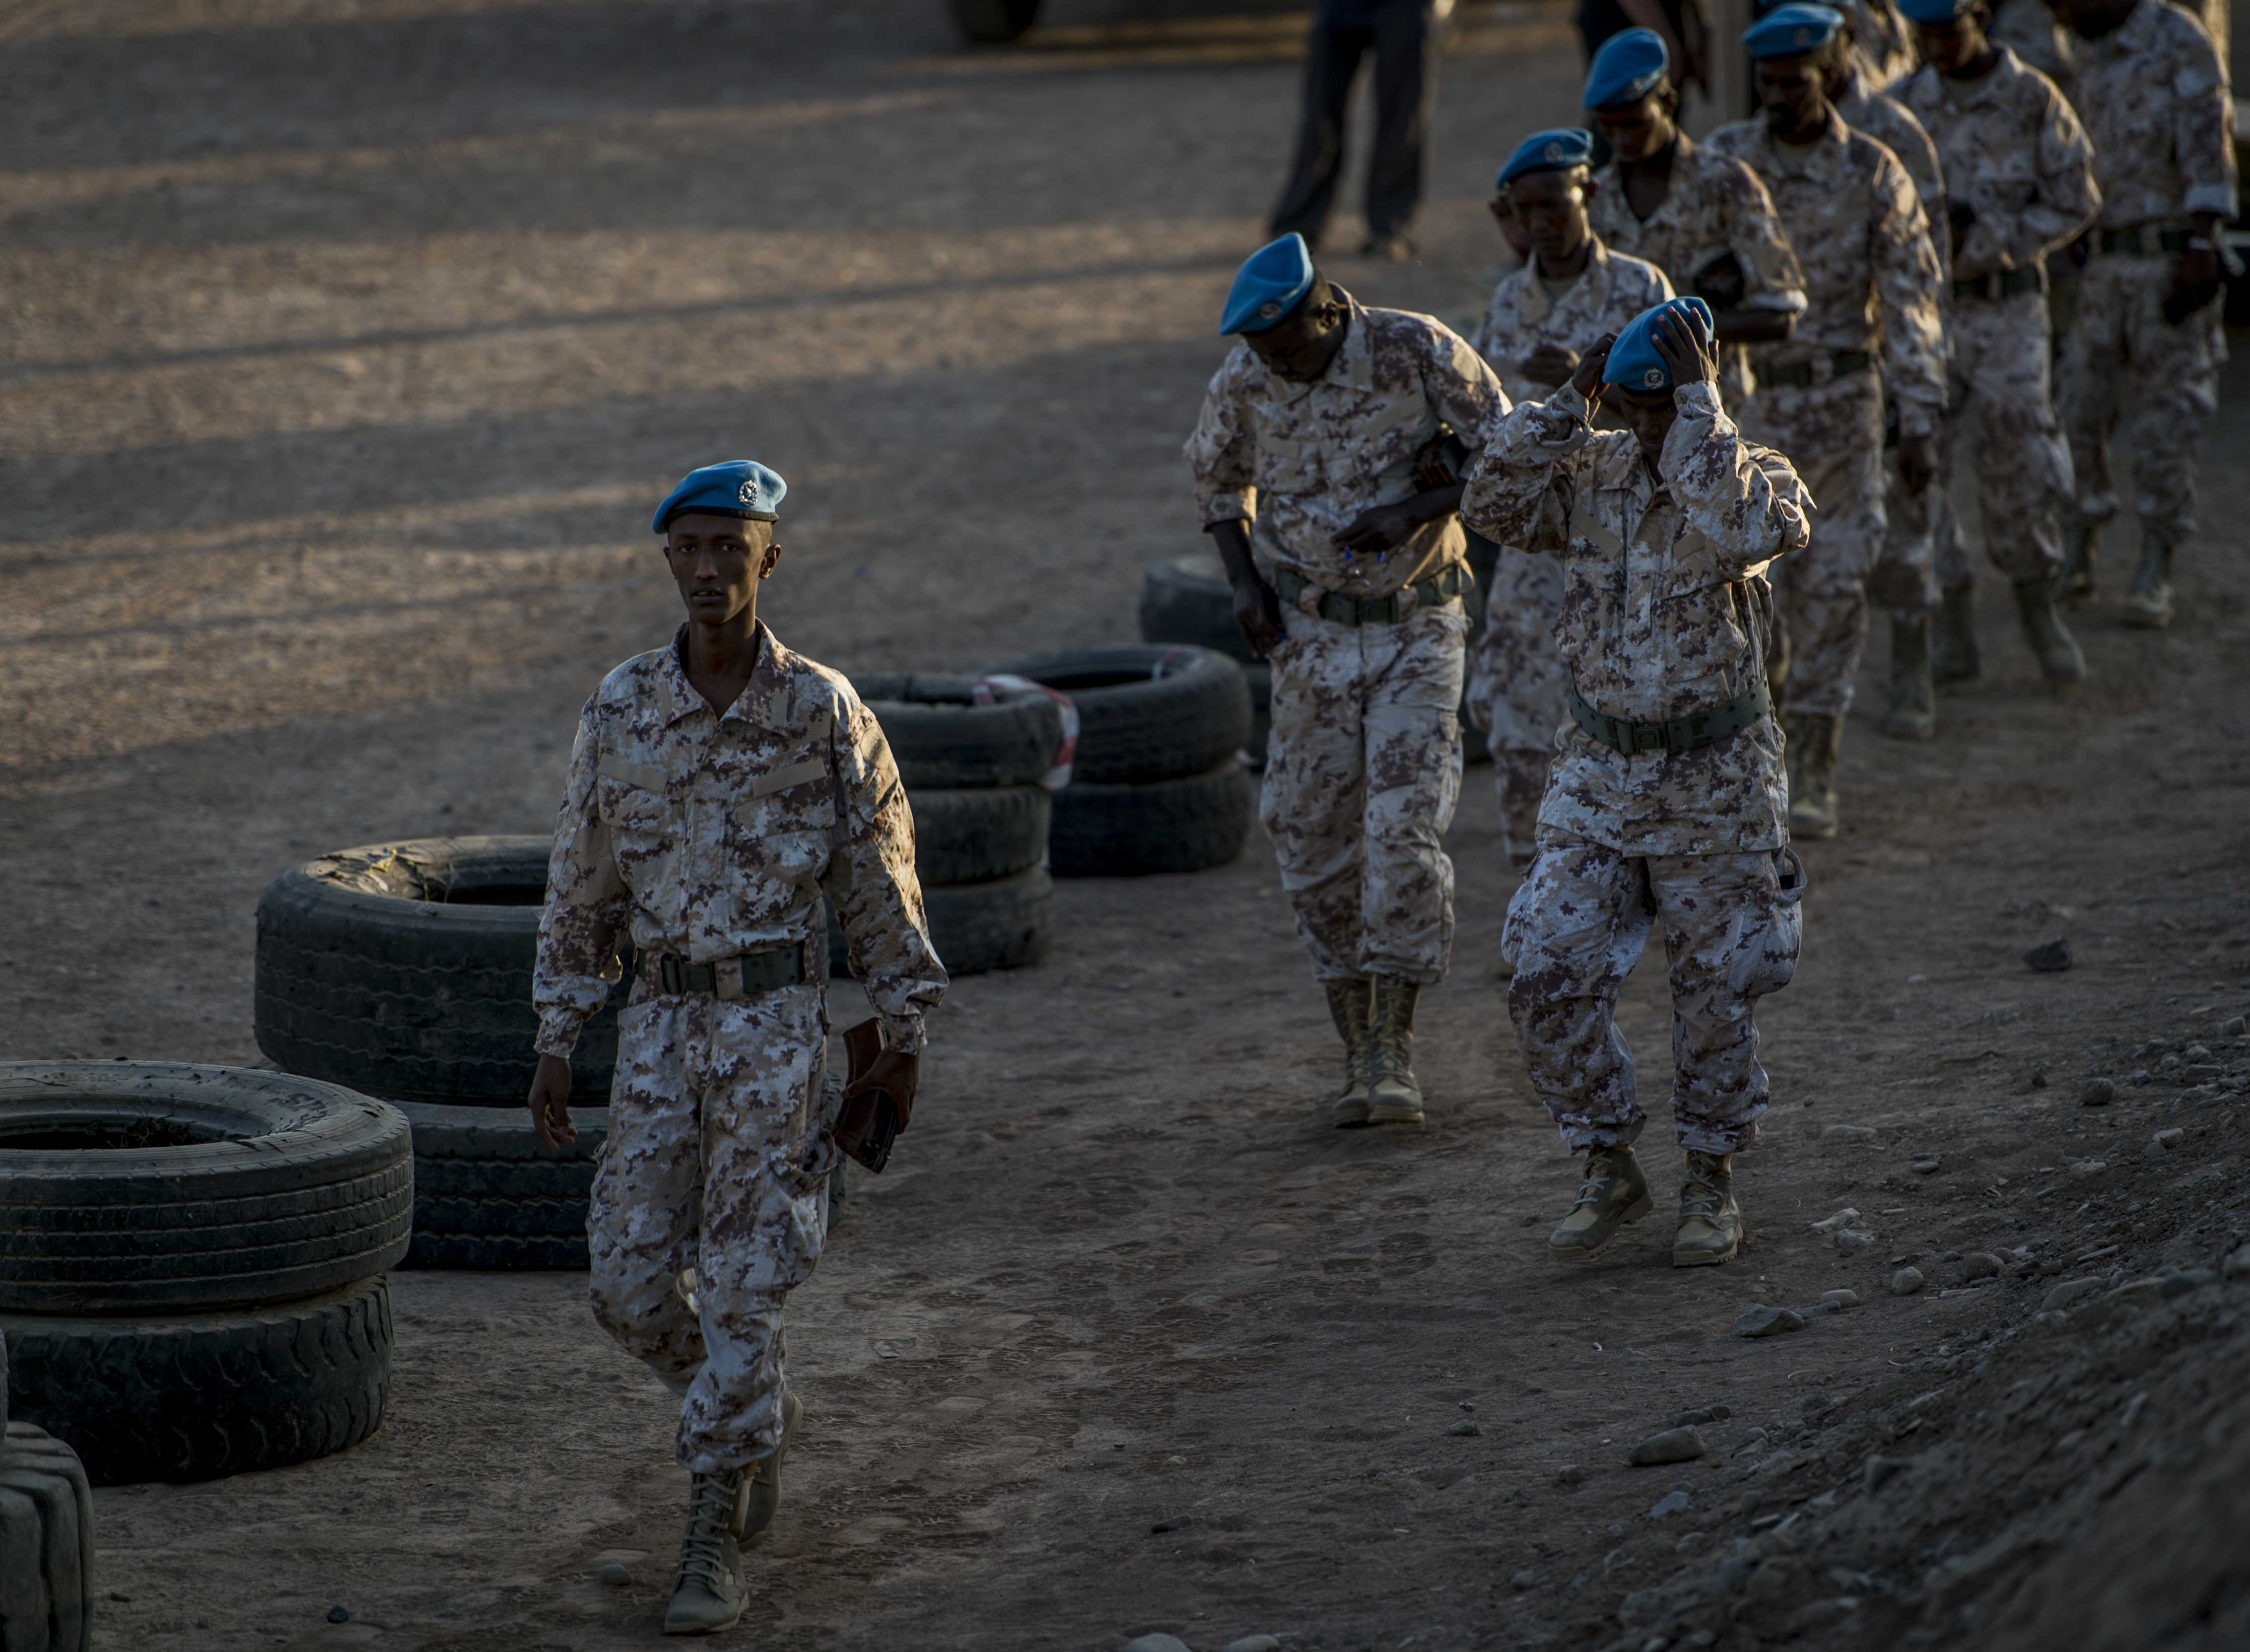 Members of the Carabinieri and Somalia Police Force, train at a shooting range in Djibouti, Djibouti, Oct. 30, 2016. The Carabinieri is in charge of training mission MAIDIT Somalia 6, which is the mission of training the Somali Police Force in order to promote the stability and security of the entire region of the Horn of Africa. (U.S. Air Force photo by Staff Sgt. Kenneth W. Norman)